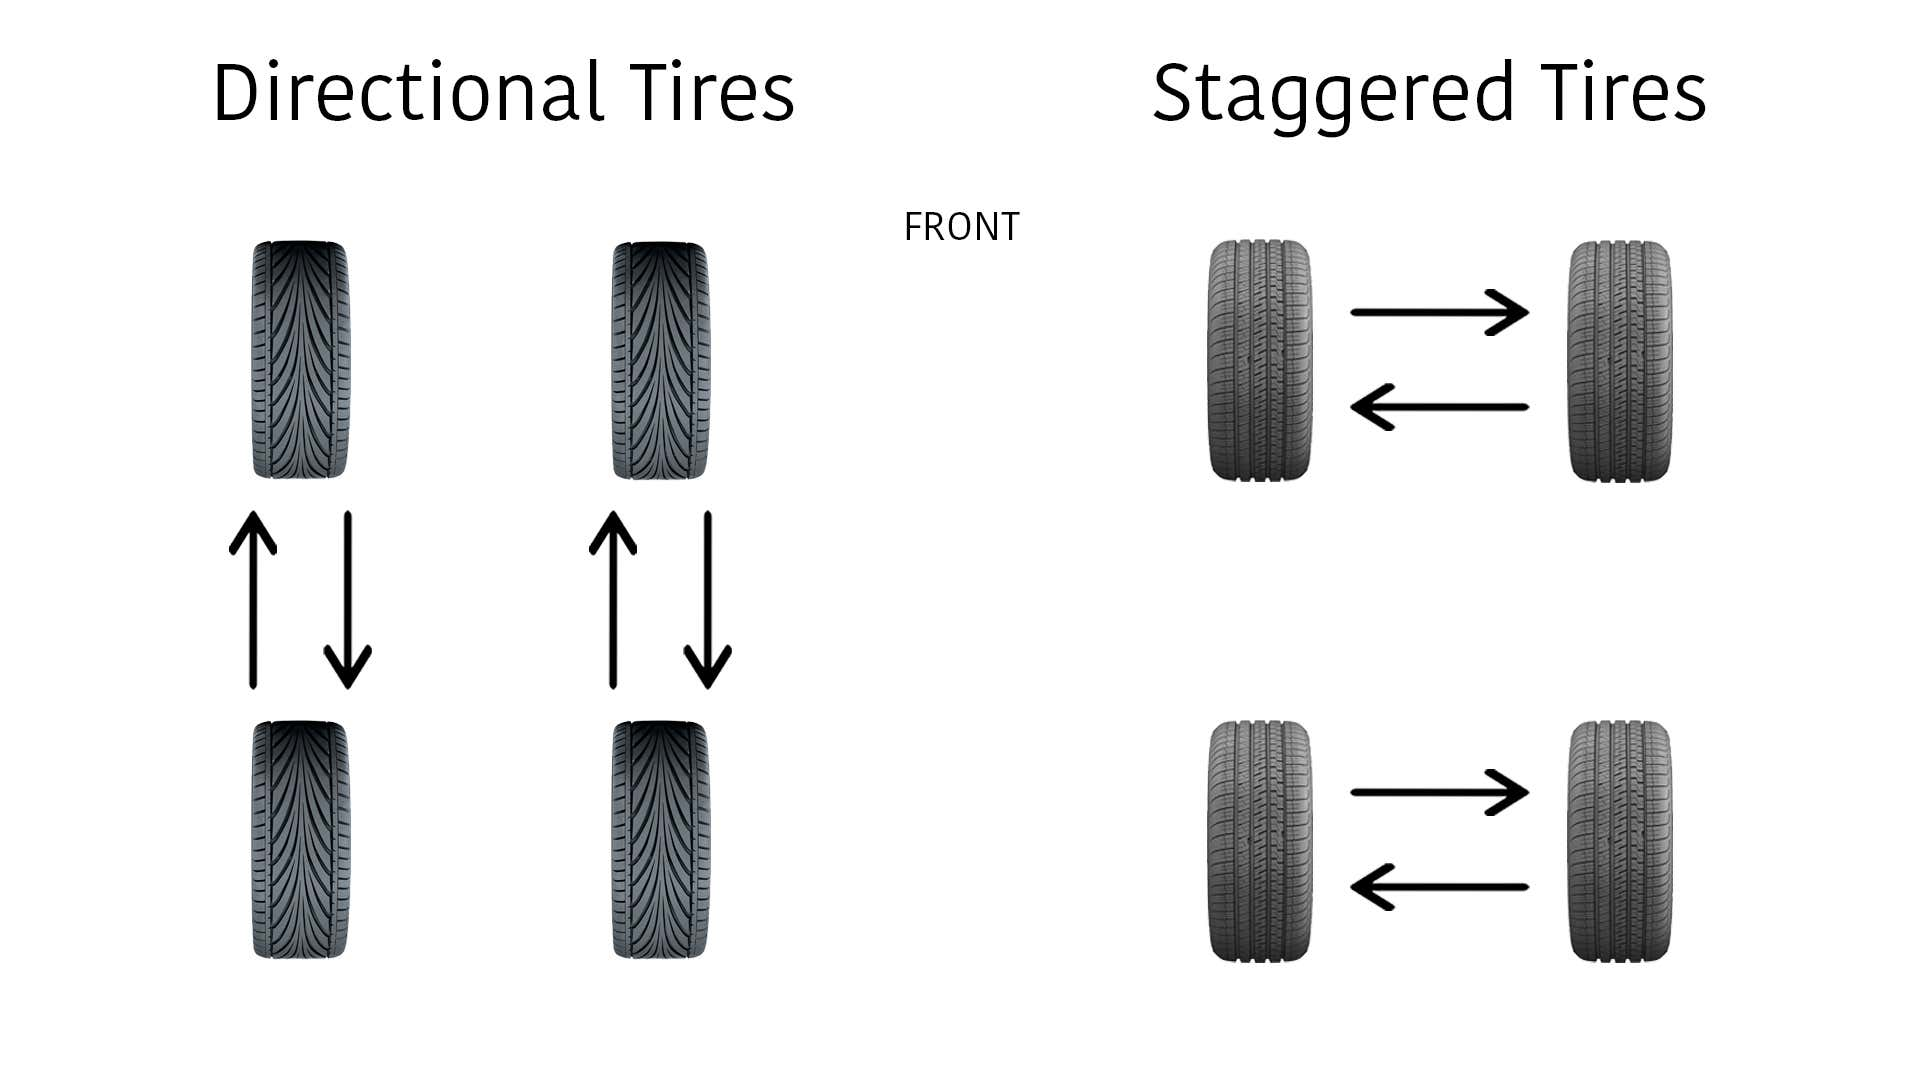 Directional tires are design to roll in only one specific direction.